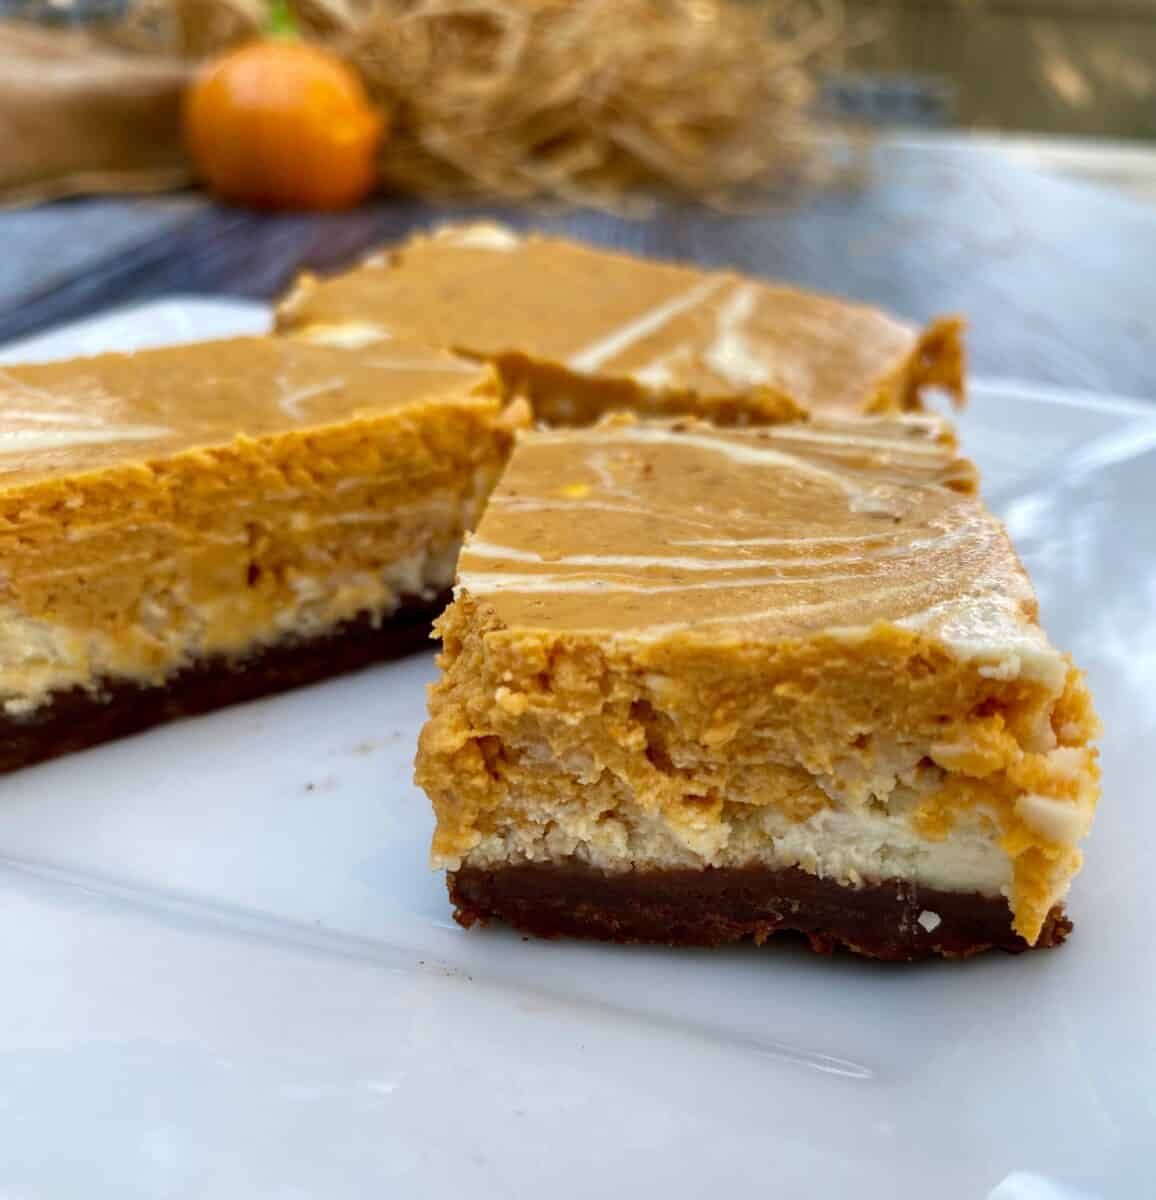 Three portions of pumpkin cheesecake bars on a plate with a small pumpkin and straw in the background.